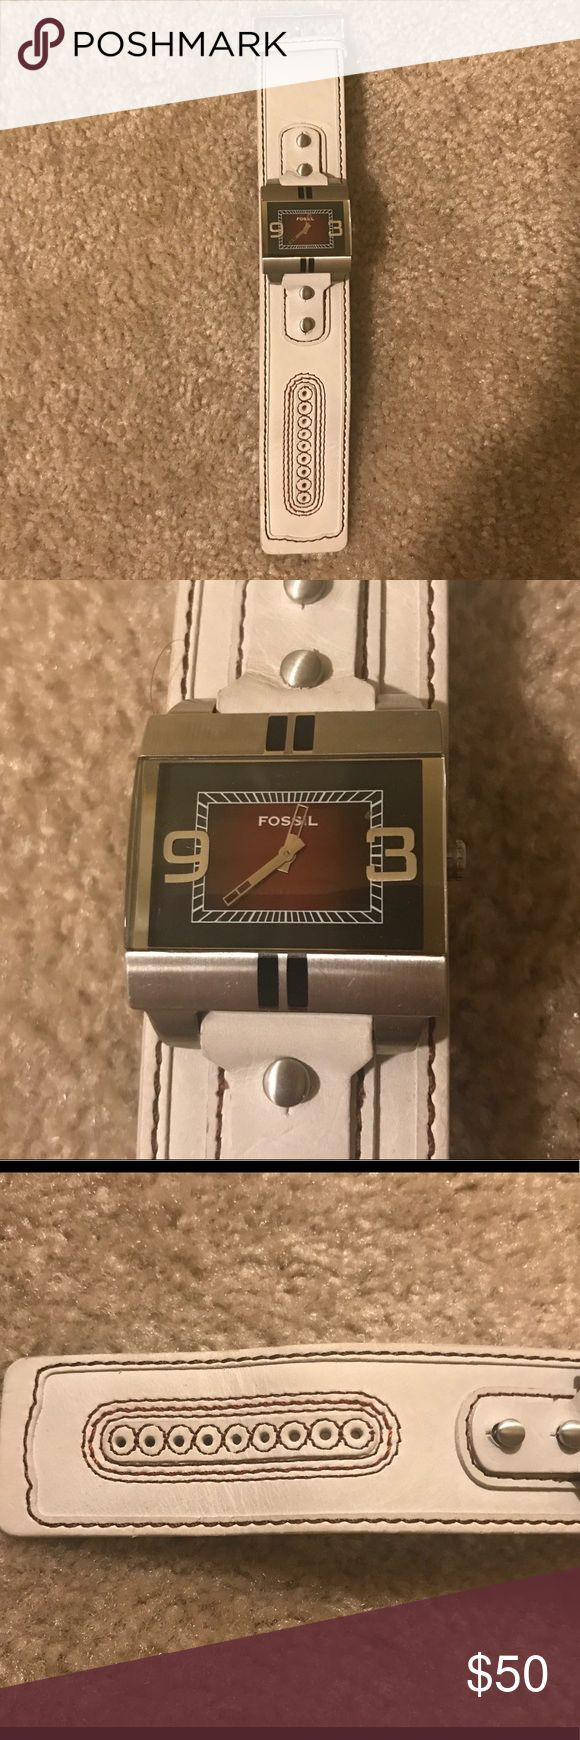 EUC Fossil Men's Leather Watch! EUC Fossil Leather Watch! Men's watch has square face and light cream leather band with red/burgundy stitching. No stains or spots on band. Watch needs new battery. Comes from a smoke free home. Make me an offer! Fossil Accessories Watches